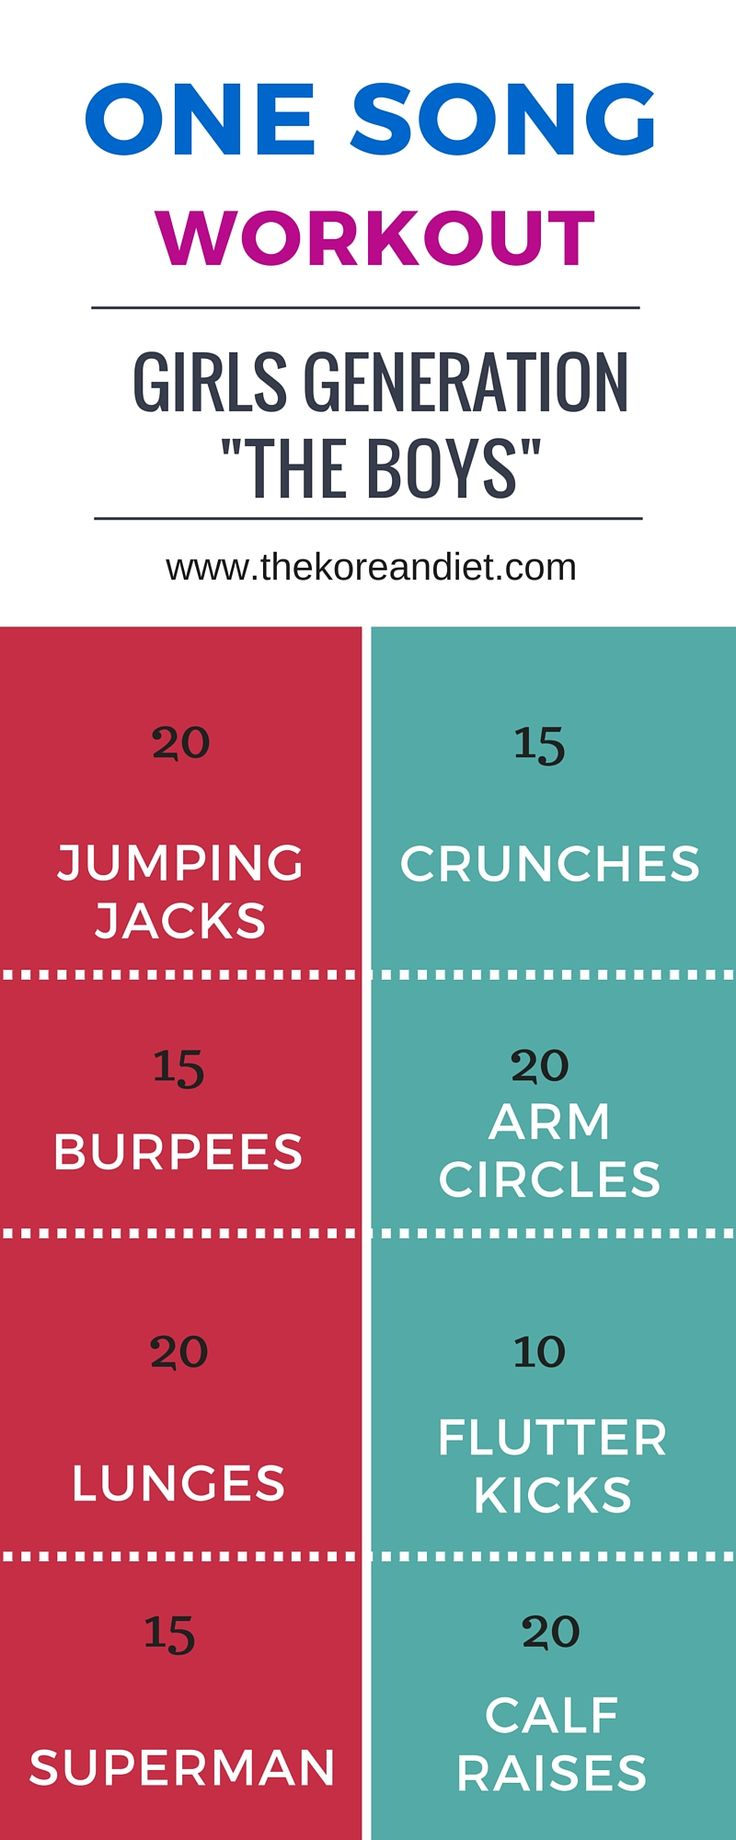 ONE SONG WORKOUT will make you fit. http://thekoreandiet.com #SNSD #Fitness #Workout